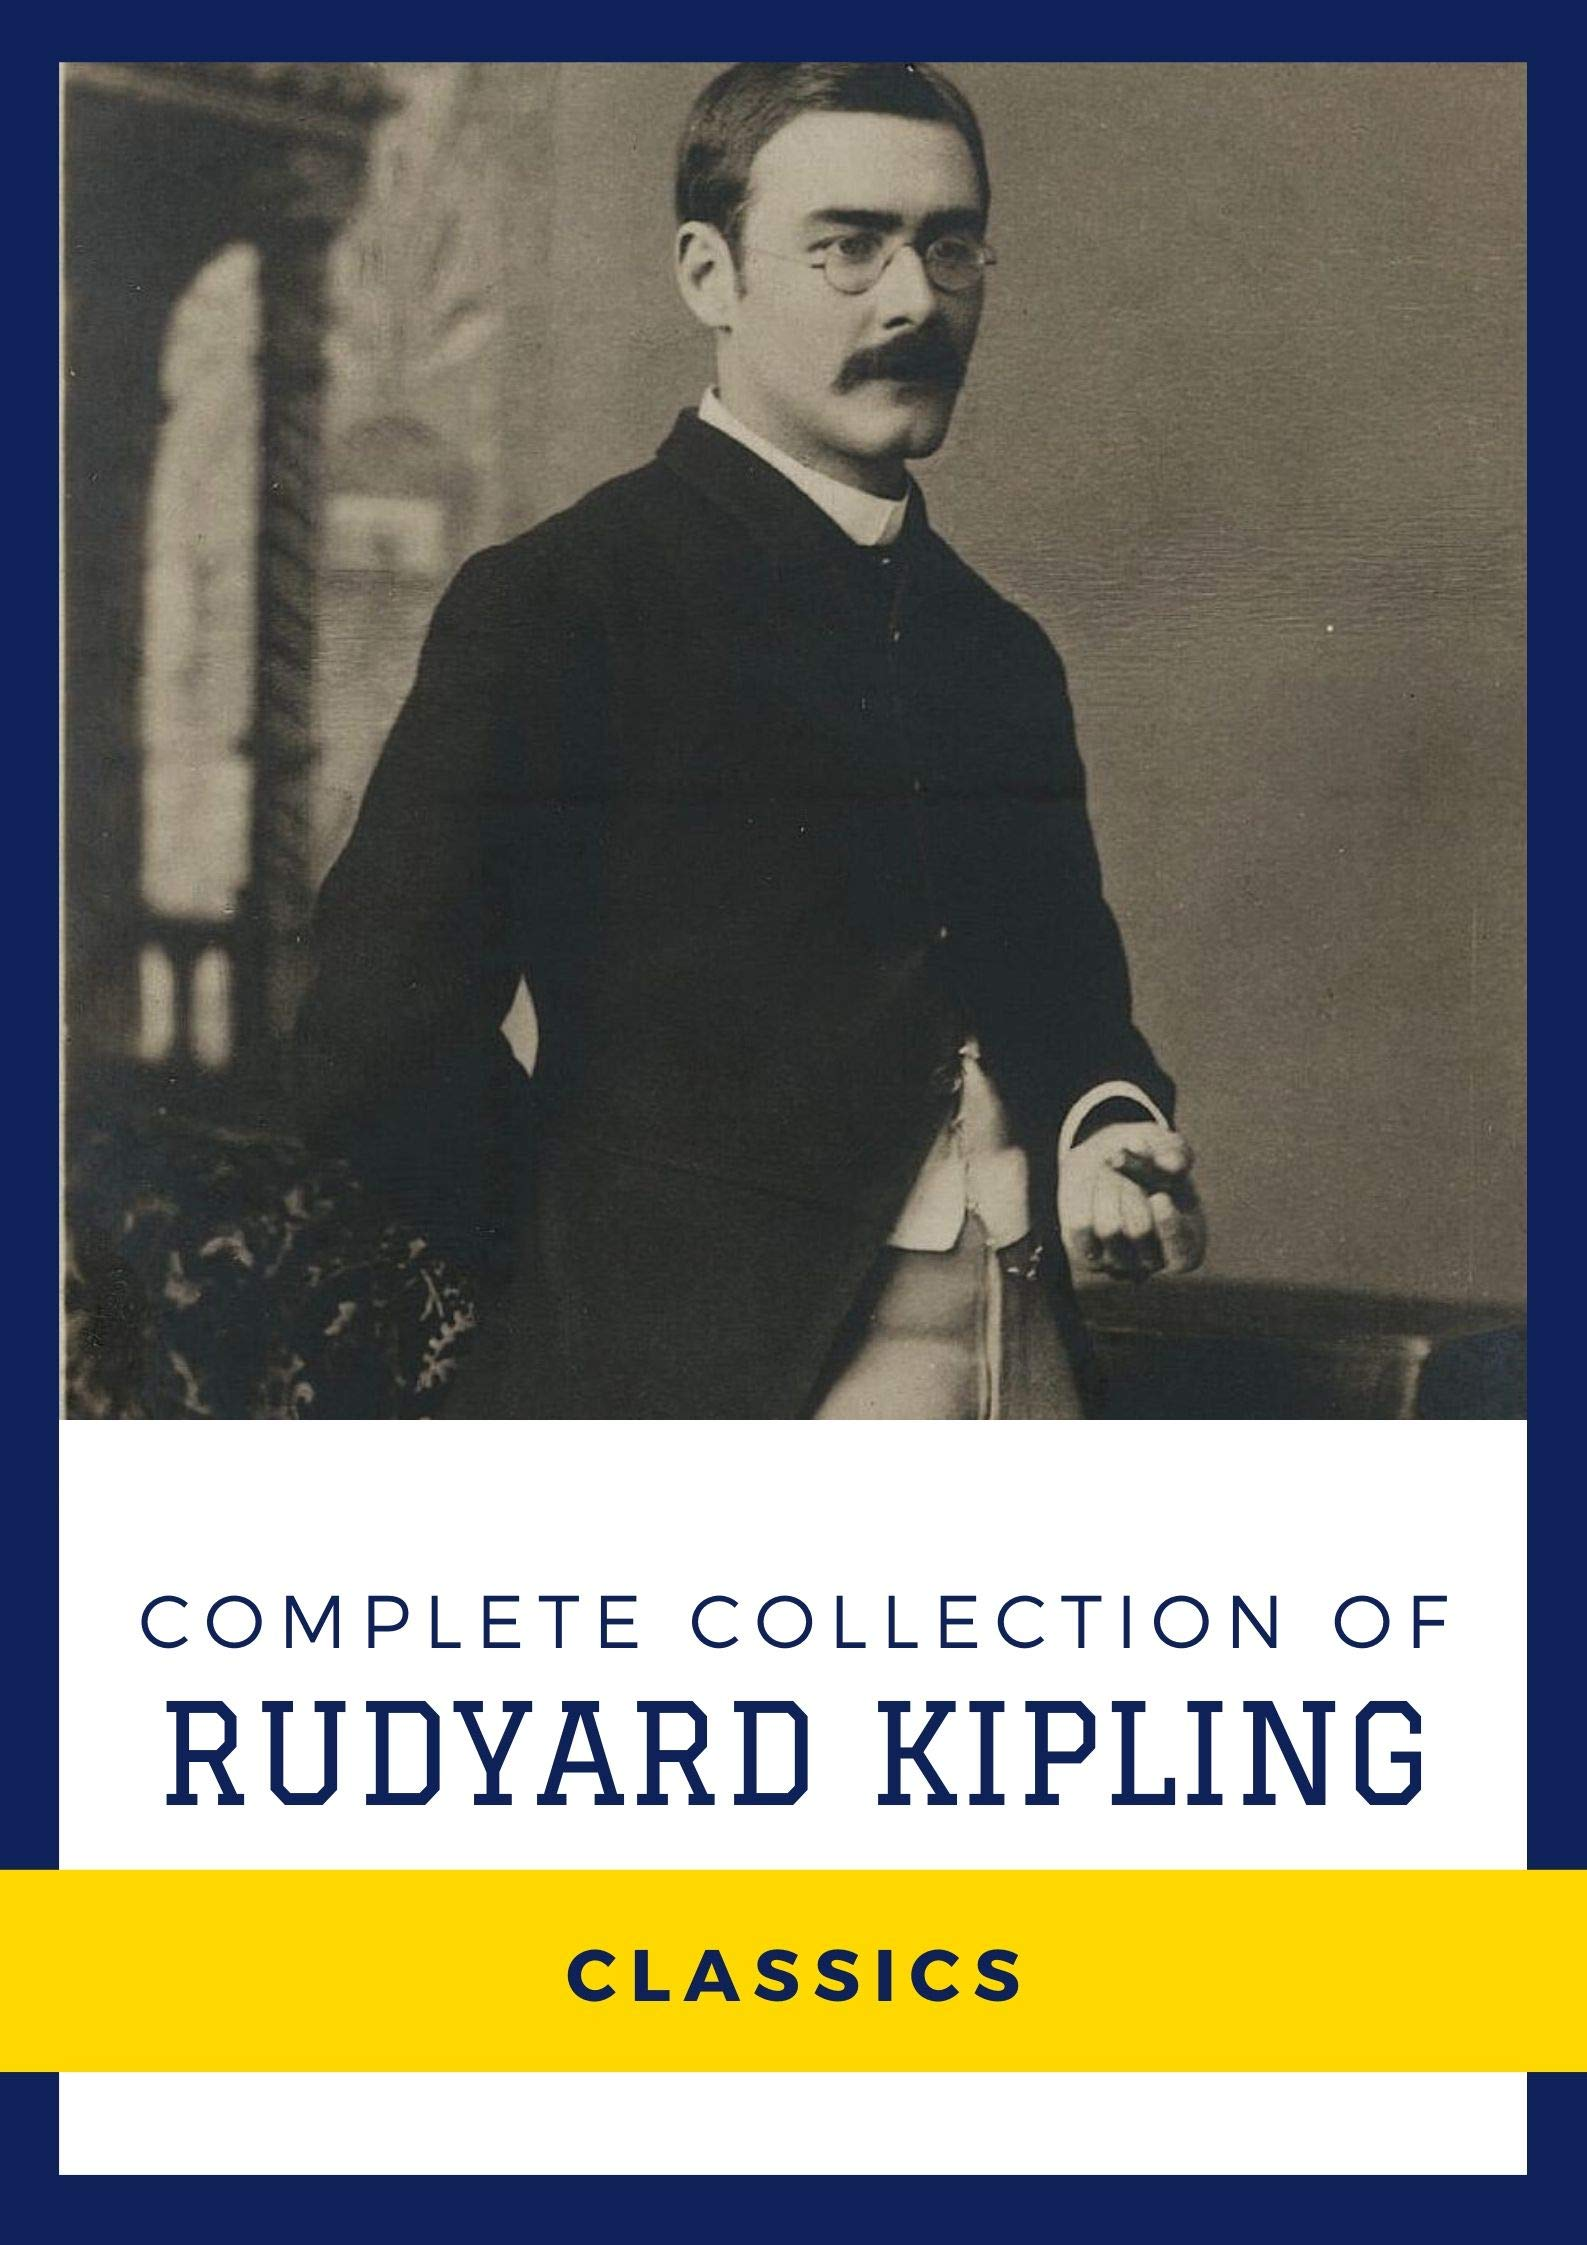 Complete Collection of Rudyard Kipling (Annotated): Collection Includes The Jungle Book, Indian Tales, Just So Stories, Kim, The Second Jungle Book, Captains Courageous, & More